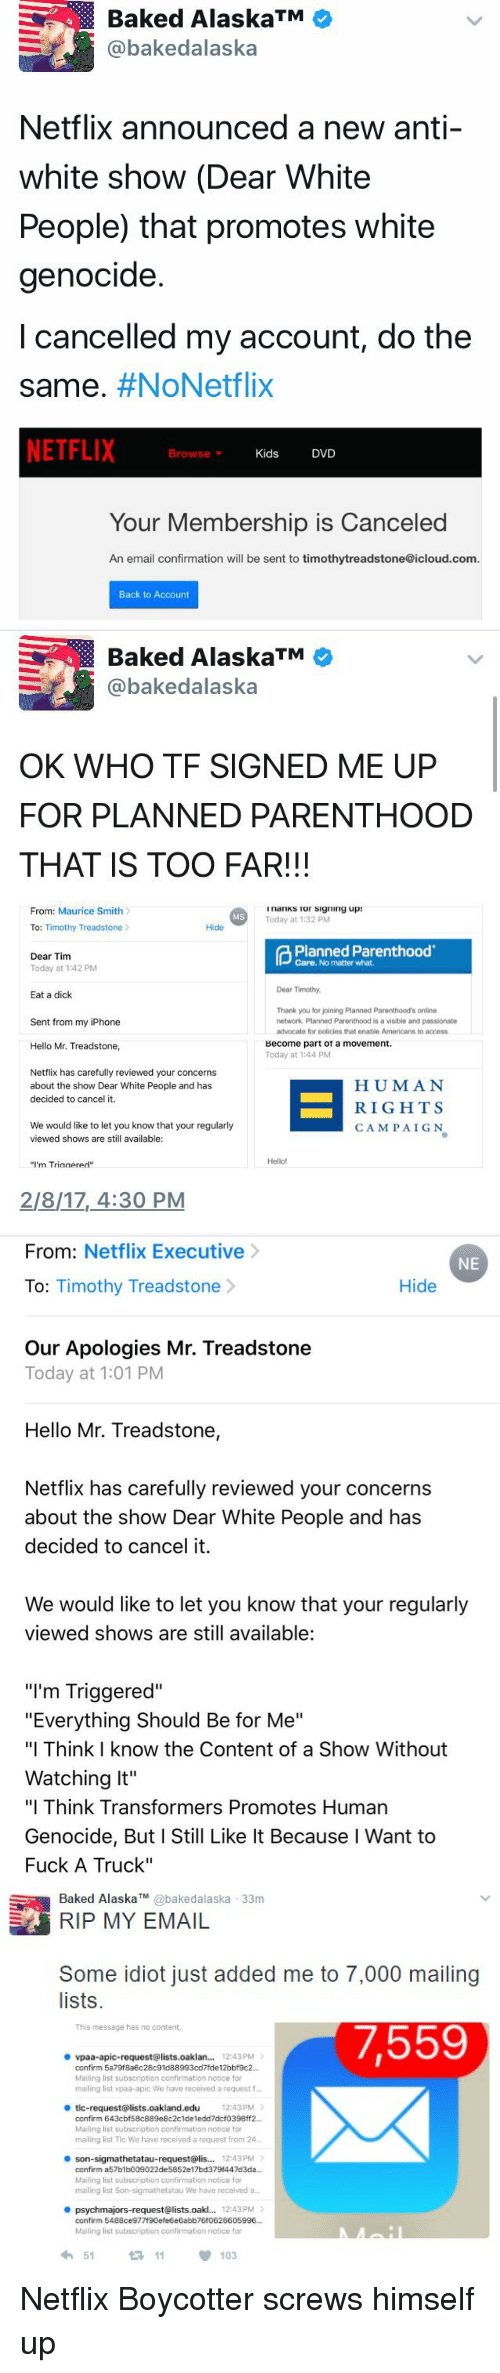 """White Genocide: Baked AlaskaTM  @bakedalaska  Netflix announced a new anti-  white show (Dear White  People) that promotes white  genocide.  cancelled my account, do the  Same  #NoNetflix  NETFLIX  Browse  Kids  DVD  v  Your Membership is Canceled  An email confirmation will be sent to timothytreadstone@icloud.com.  Back to Account   Baked AlaskaTM  bakedalaska  OK WHO TF SIGNED ME UP  FOR PLANNED PARENTHOOD  THAT IS TOO FAR!!!  From: Maurice Smith  InanKS Tor Signing up:  Today at 1:32 PM  Hide  To: Timothy Treadstone  Planned Parenthood  Dear Tim  Care. No matter what.  Today at 1:42 PM  Dear Timothy,  Eat a dick  Thank you for joining Planned Parenthood's online  Sent from my iPhone  network, Planned Parenthood is a visible and passionate  advocate for policies that enable Americans to access  Become part ot a movement.  Hello Mr. Treadstone,  Today at 1:44 PM  Netflix has carefully reviewed your concerns  HUMAN  about the show Dear White People and has  decided to cancel it.  RIGHTS  We would like to let you know that your regularly  CAMPAIGN  viewed shows are still available:  """"I'm Triaaered""""  2/8/17, 4:30 PM   From  Netflix Executive  NE  Hide  To  Timothy Treadstone  Our Apologies Mr. Treadstone  Today at 1:01 PM  Hello Mr. Treadstone,  Netflix has carefully reviewed your concerns  about the show Dear White People and has  decided to cancel it.  We would like to let you know that your regularly  viewed shows are still available:  """"I'm Triggered""""  """"Everything Should Be for Me""""  """"I Think know the Content of a Show Without  Watching It""""  """"I Think Transformers Promotes Human  Genocide, But I Still Like It Because l Want to  Fuck A Truck""""   Baked Alaska bakedalaska 33m  MY EMAIL  Some idiot just added me to 7,000 mailing  lists.  This message has no content.  7,559  vpaa-apic-request@lists.oaklan... 12:43PM  Mailing list subscription confirmation notice for  mailing list vpaa-apic We have reoeived a request t  e tic-request Alists cakland.edu 1243PM  confirm Maili"""